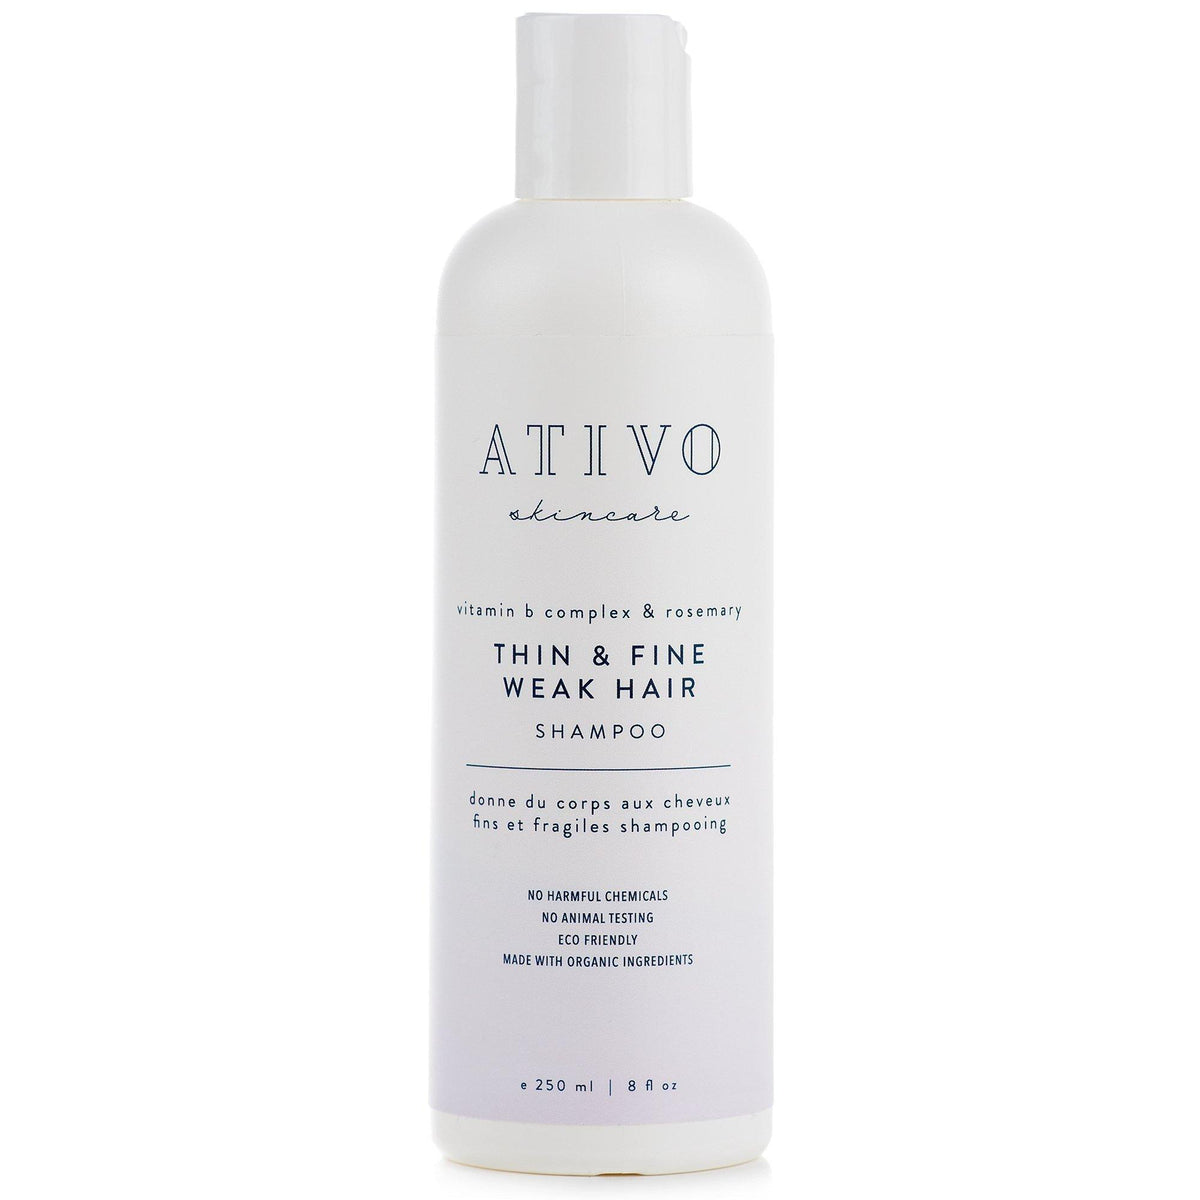 Thin & Fine Weak Hair Conditioner - Ativo Skincare